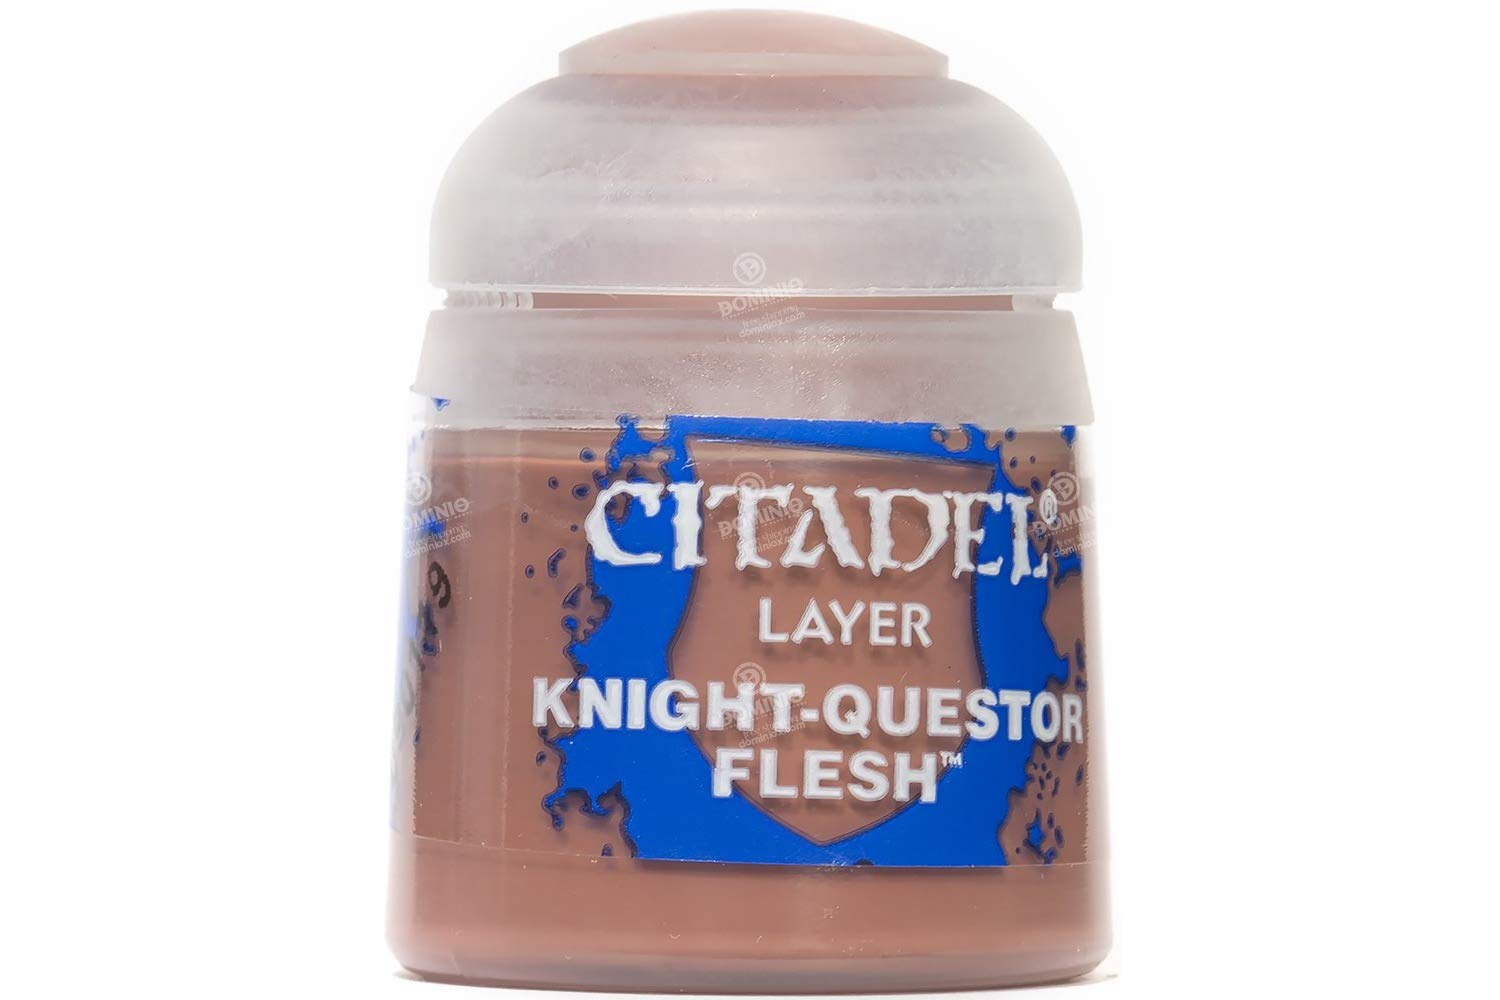 Citadel - Knight Questor Flesh Layer